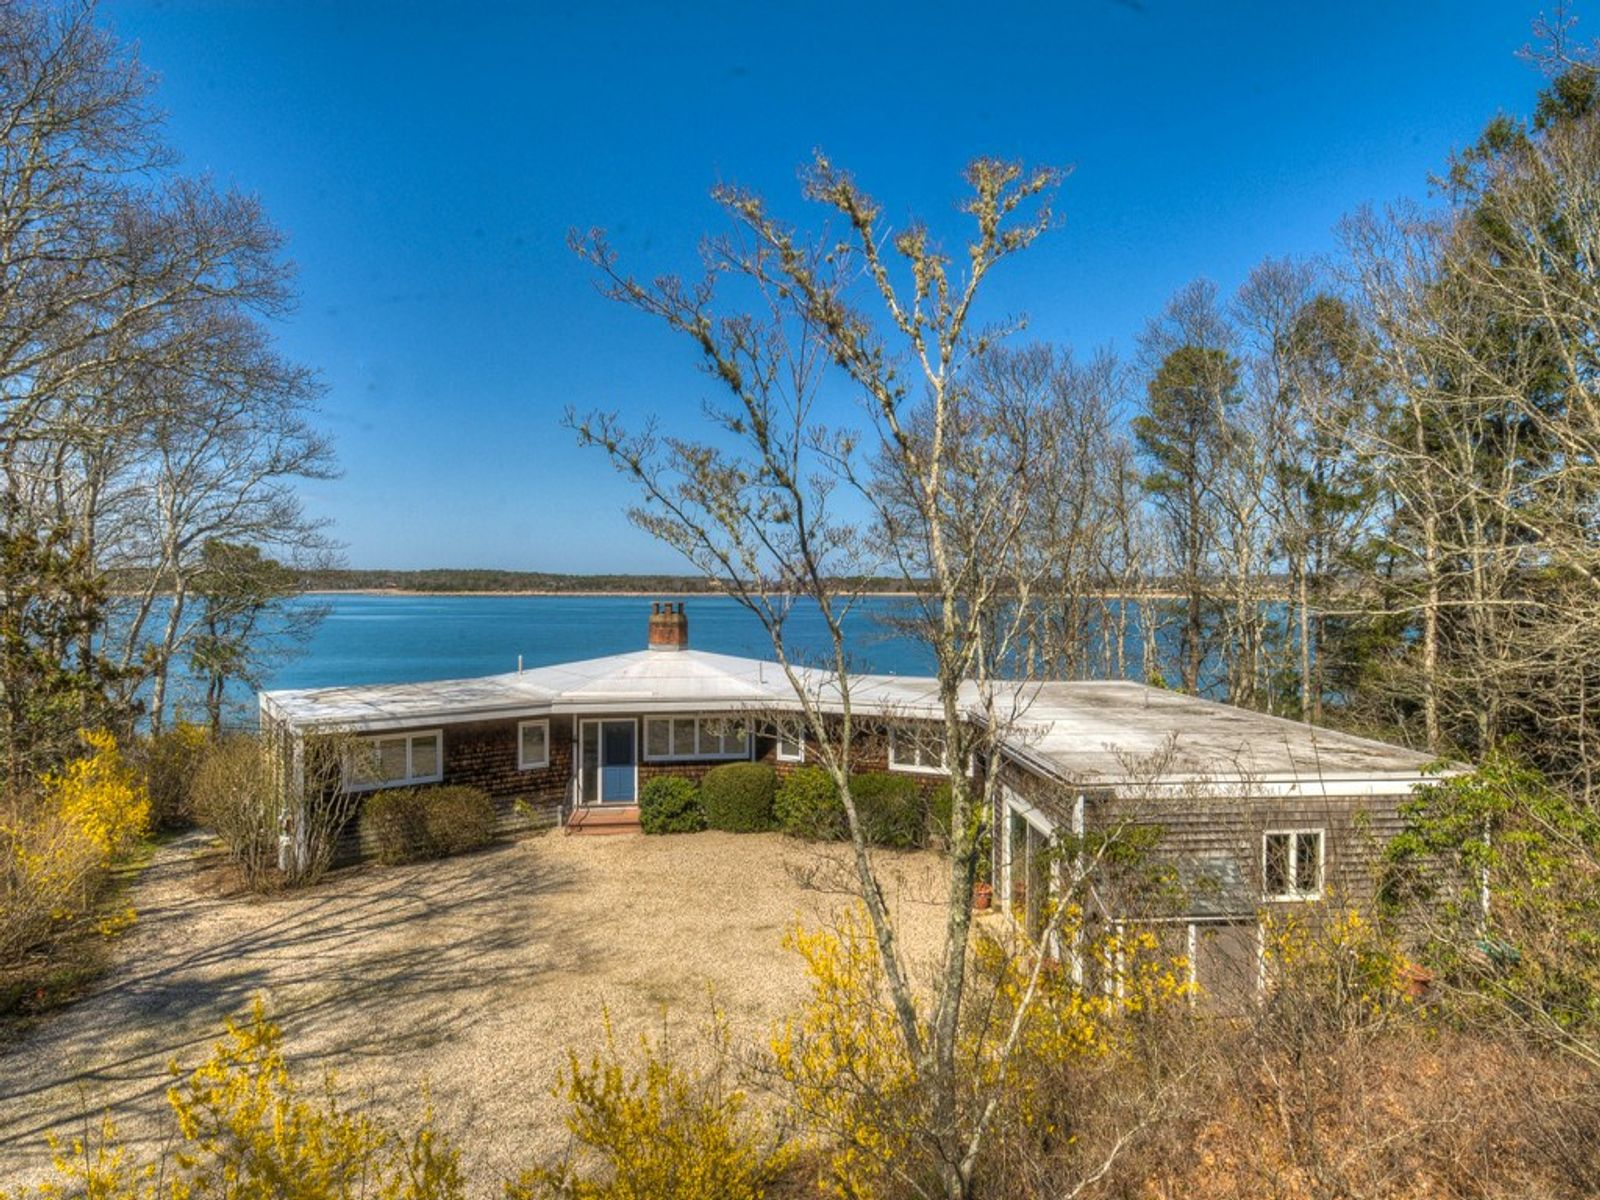 Scraggy Neck Waterfront Retreat, Cataumet MA Single Family Home - Cape Cod Real Estate